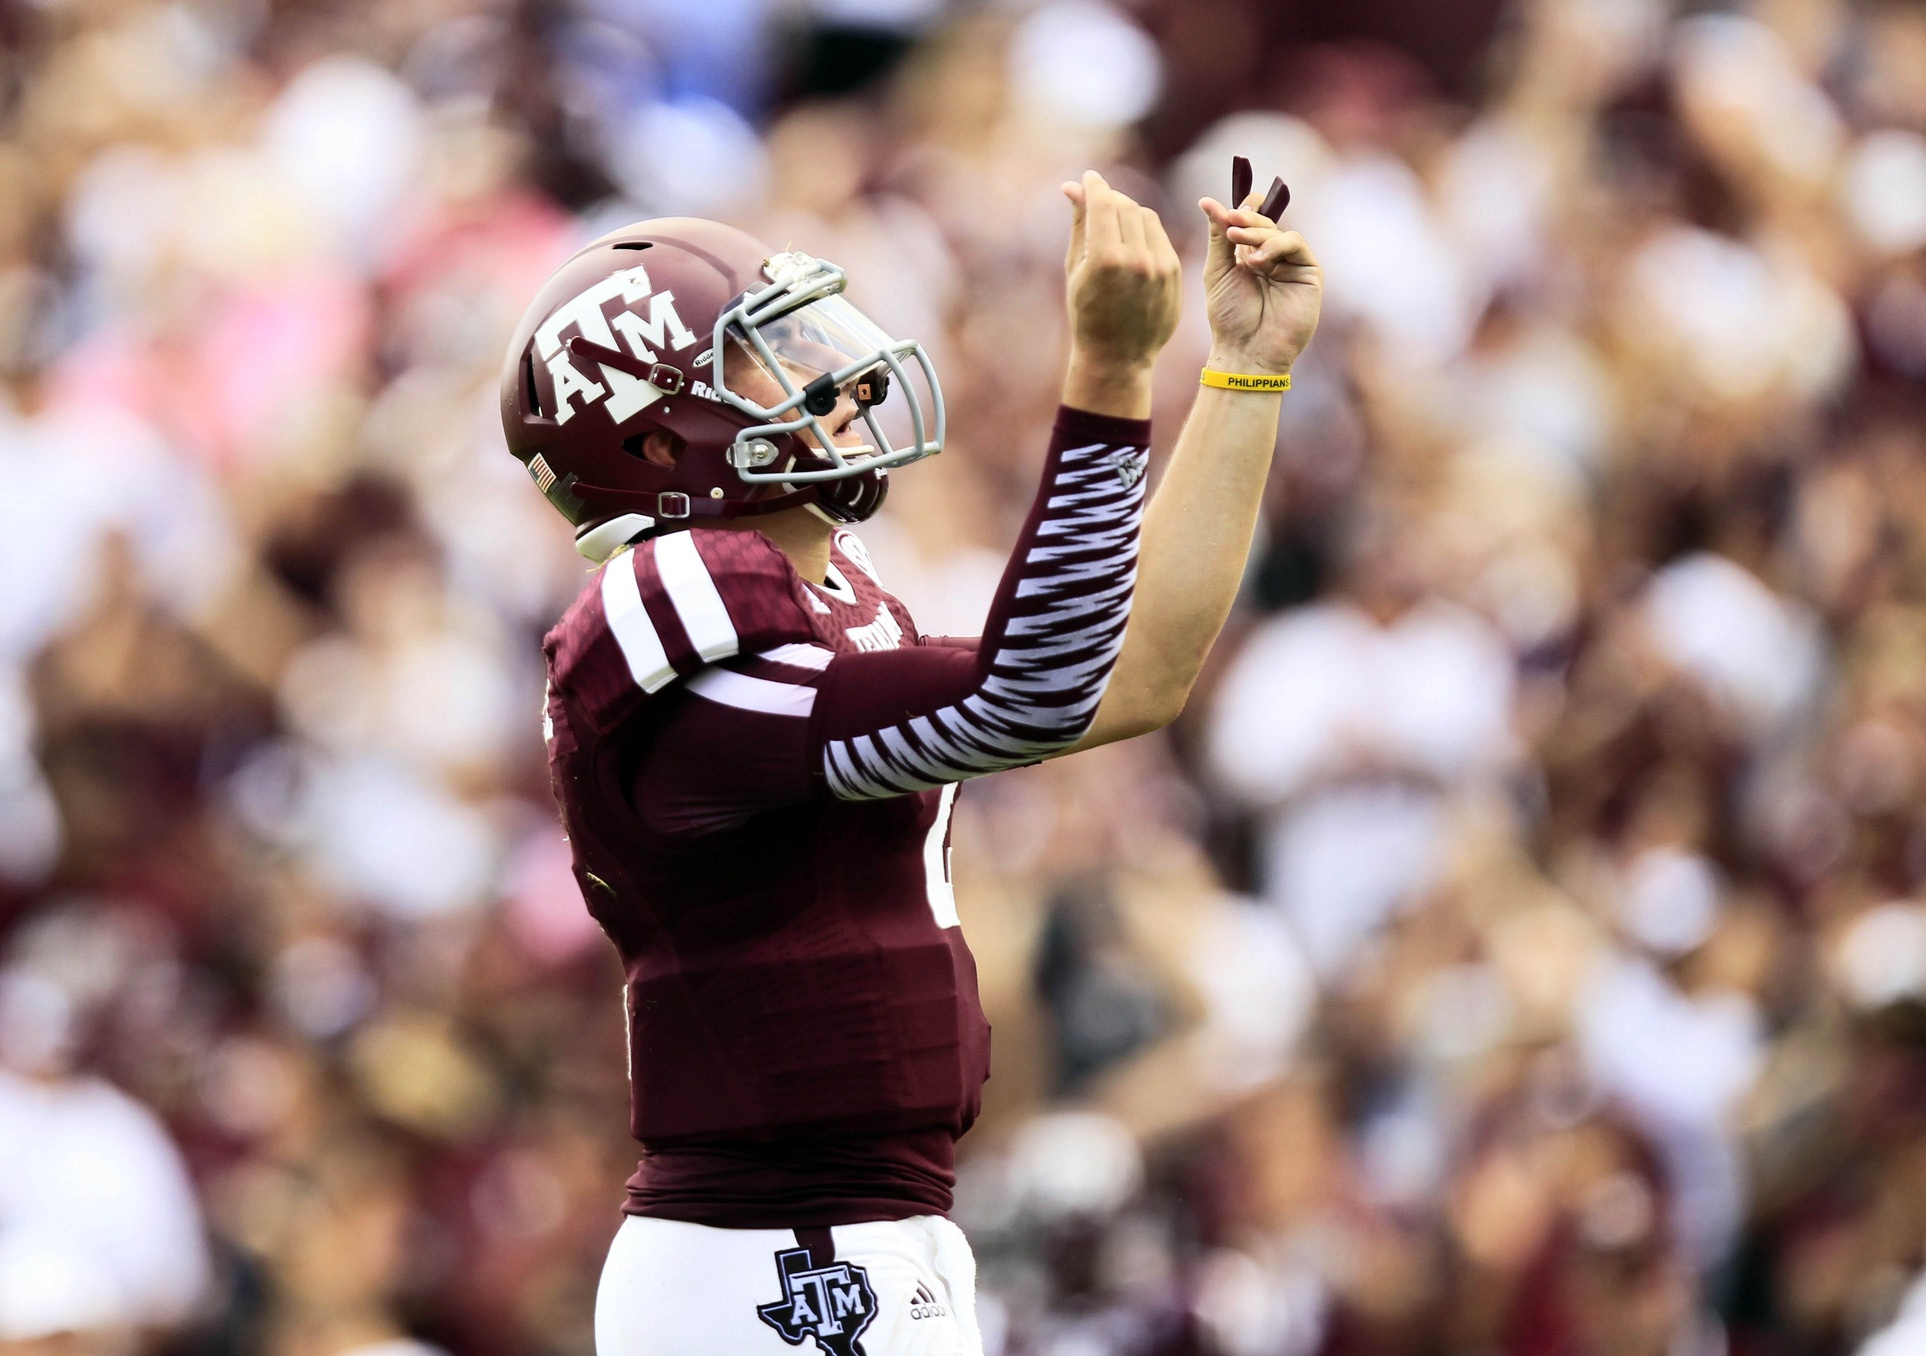 Draft Draft Blog - And With The 16th Pick The Cowboys Select... Wait, Not Johnny?